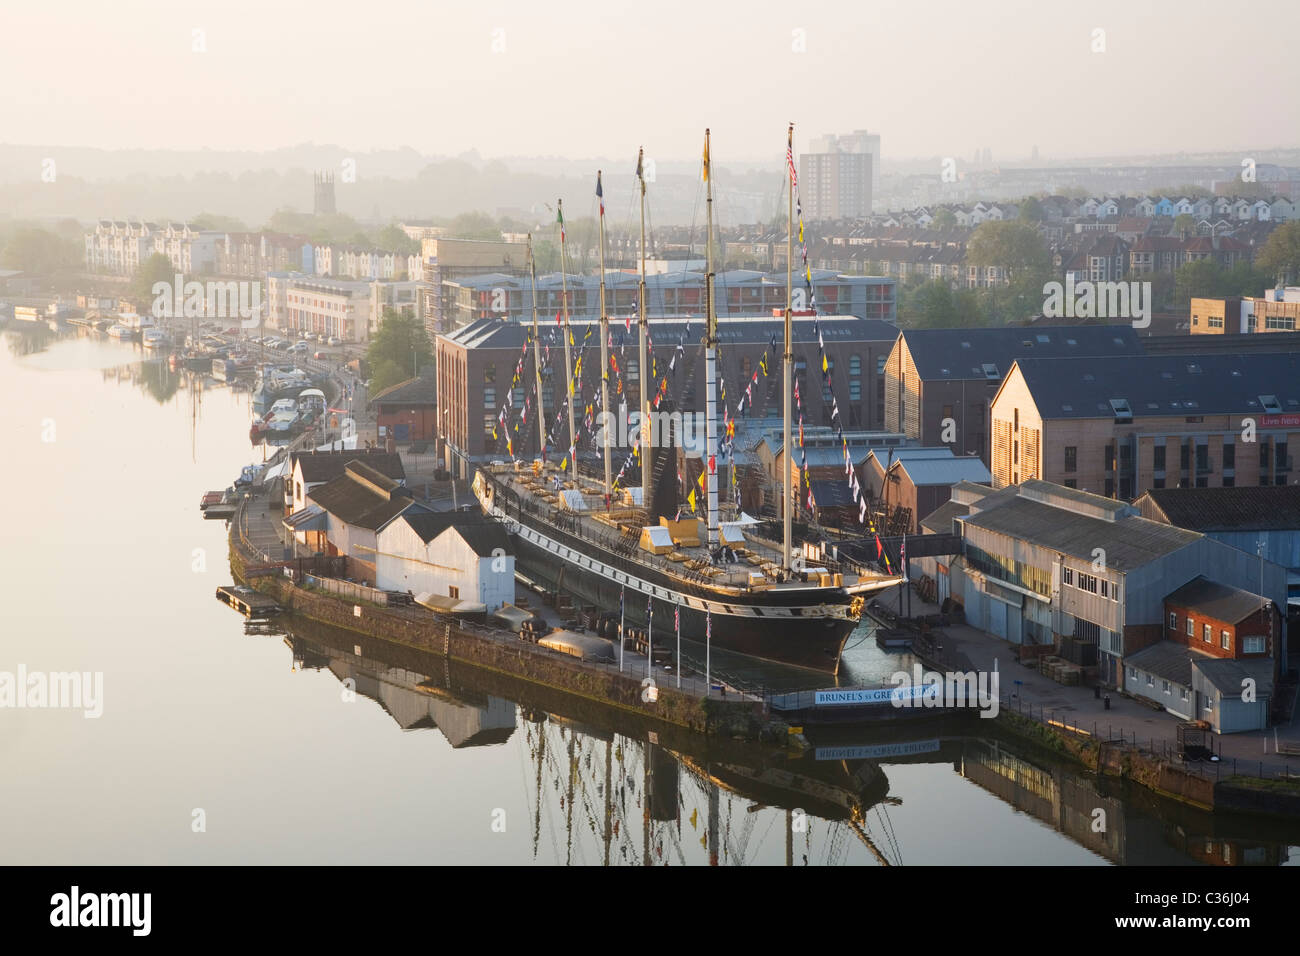 Image result for ss great britain